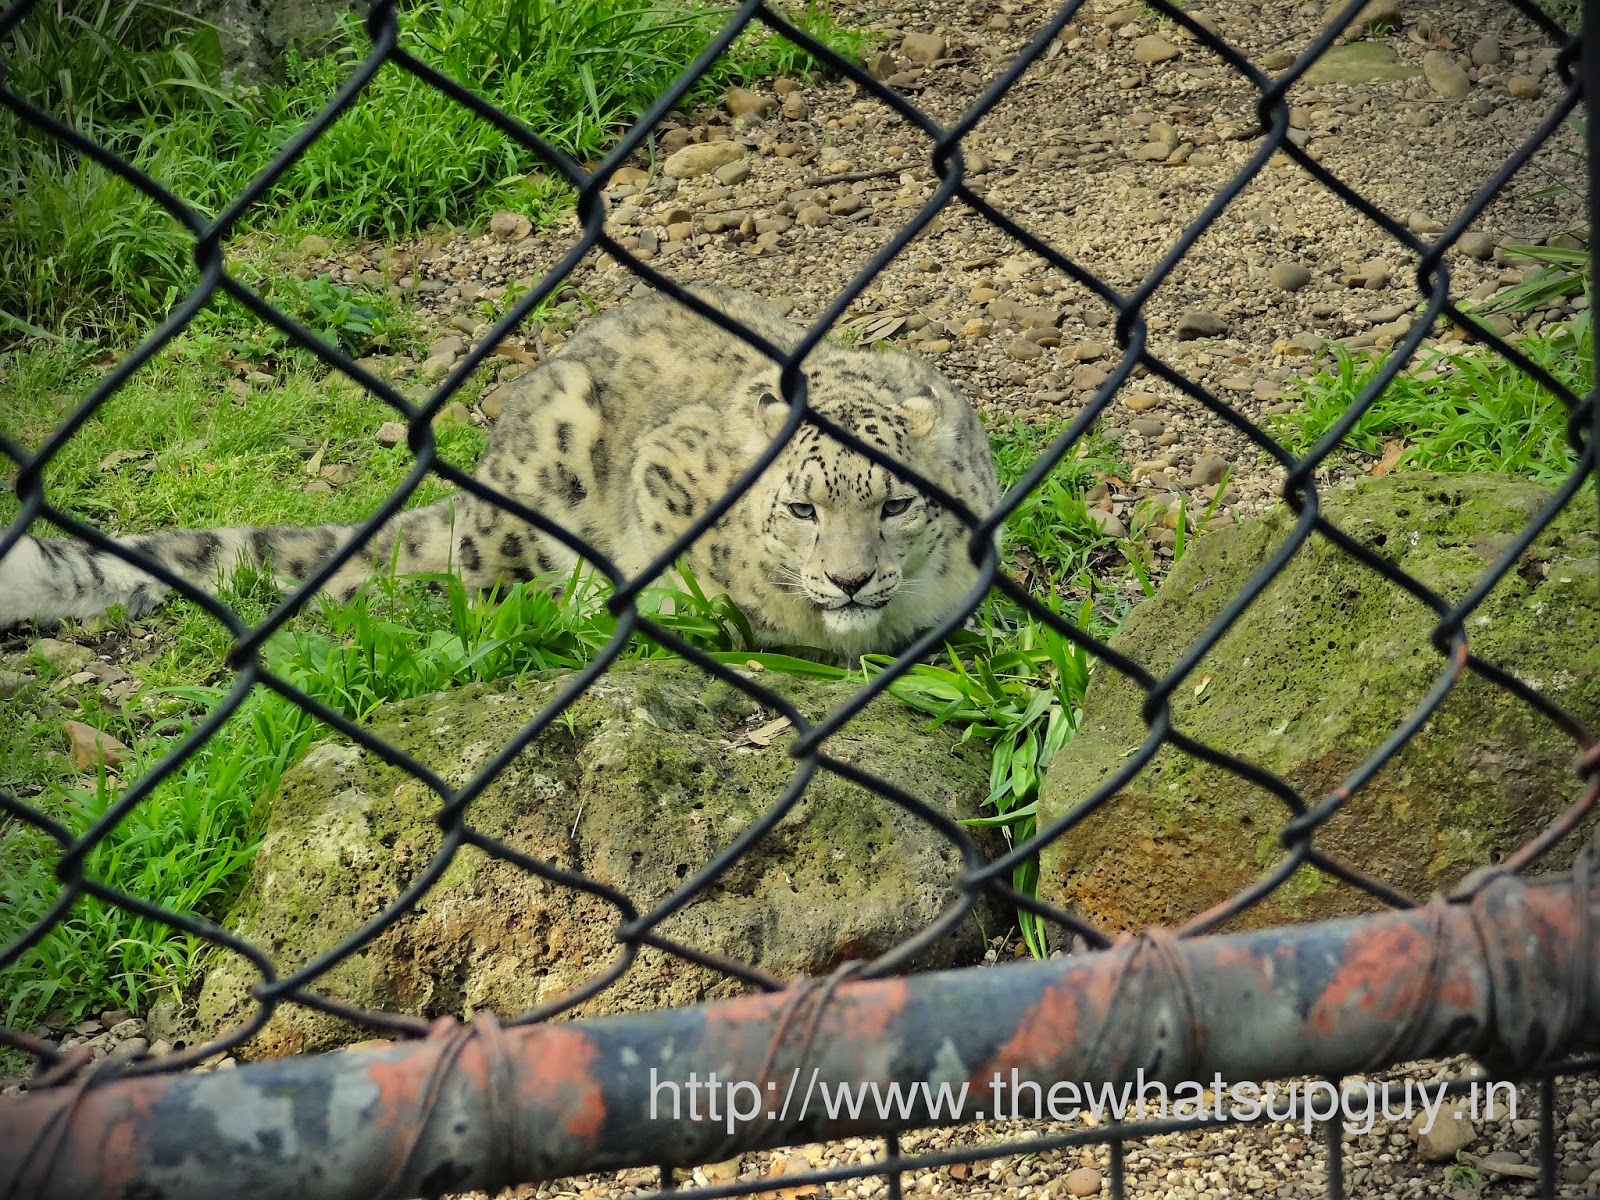 Snow Leopard In Melbourne Zoo